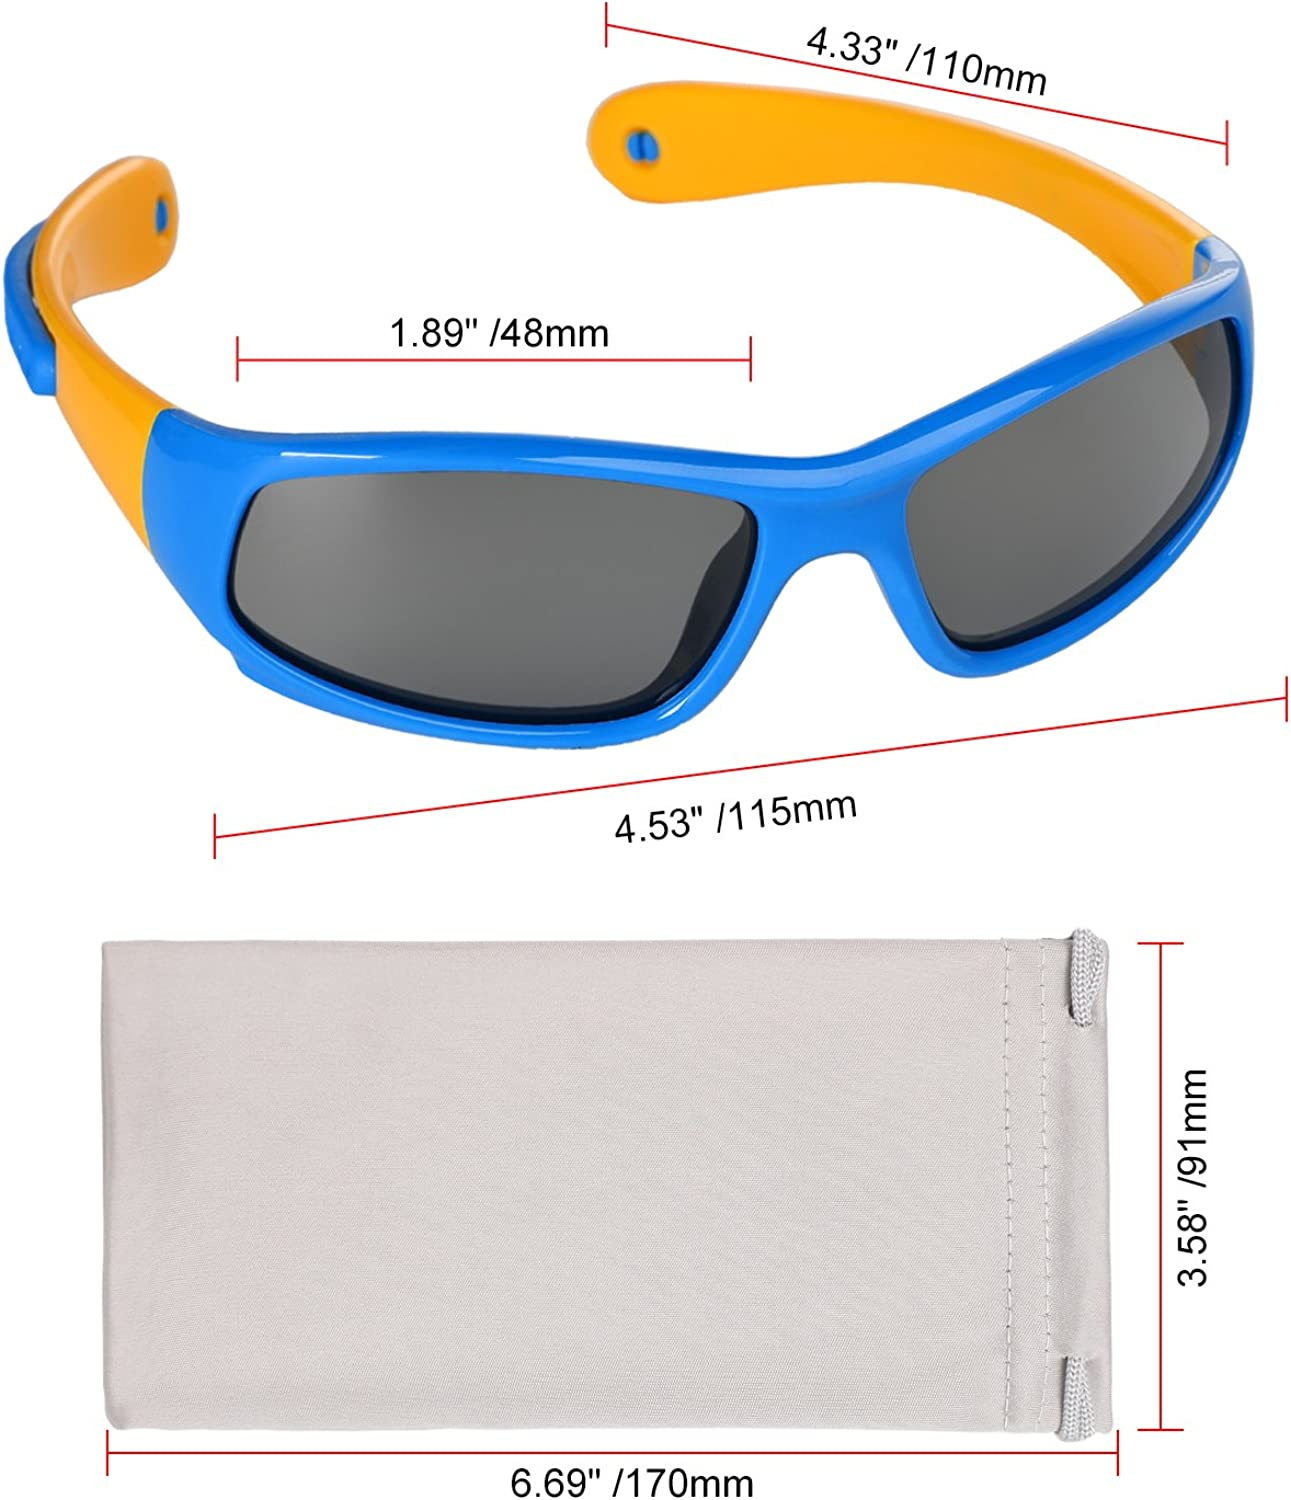 Hifot Baby Boy Girl Sunglasses Rubble Flexible Children Kids Sunglasses UV Protection Polarized Toddler Sunglasses Age 6 Months to 3 Years